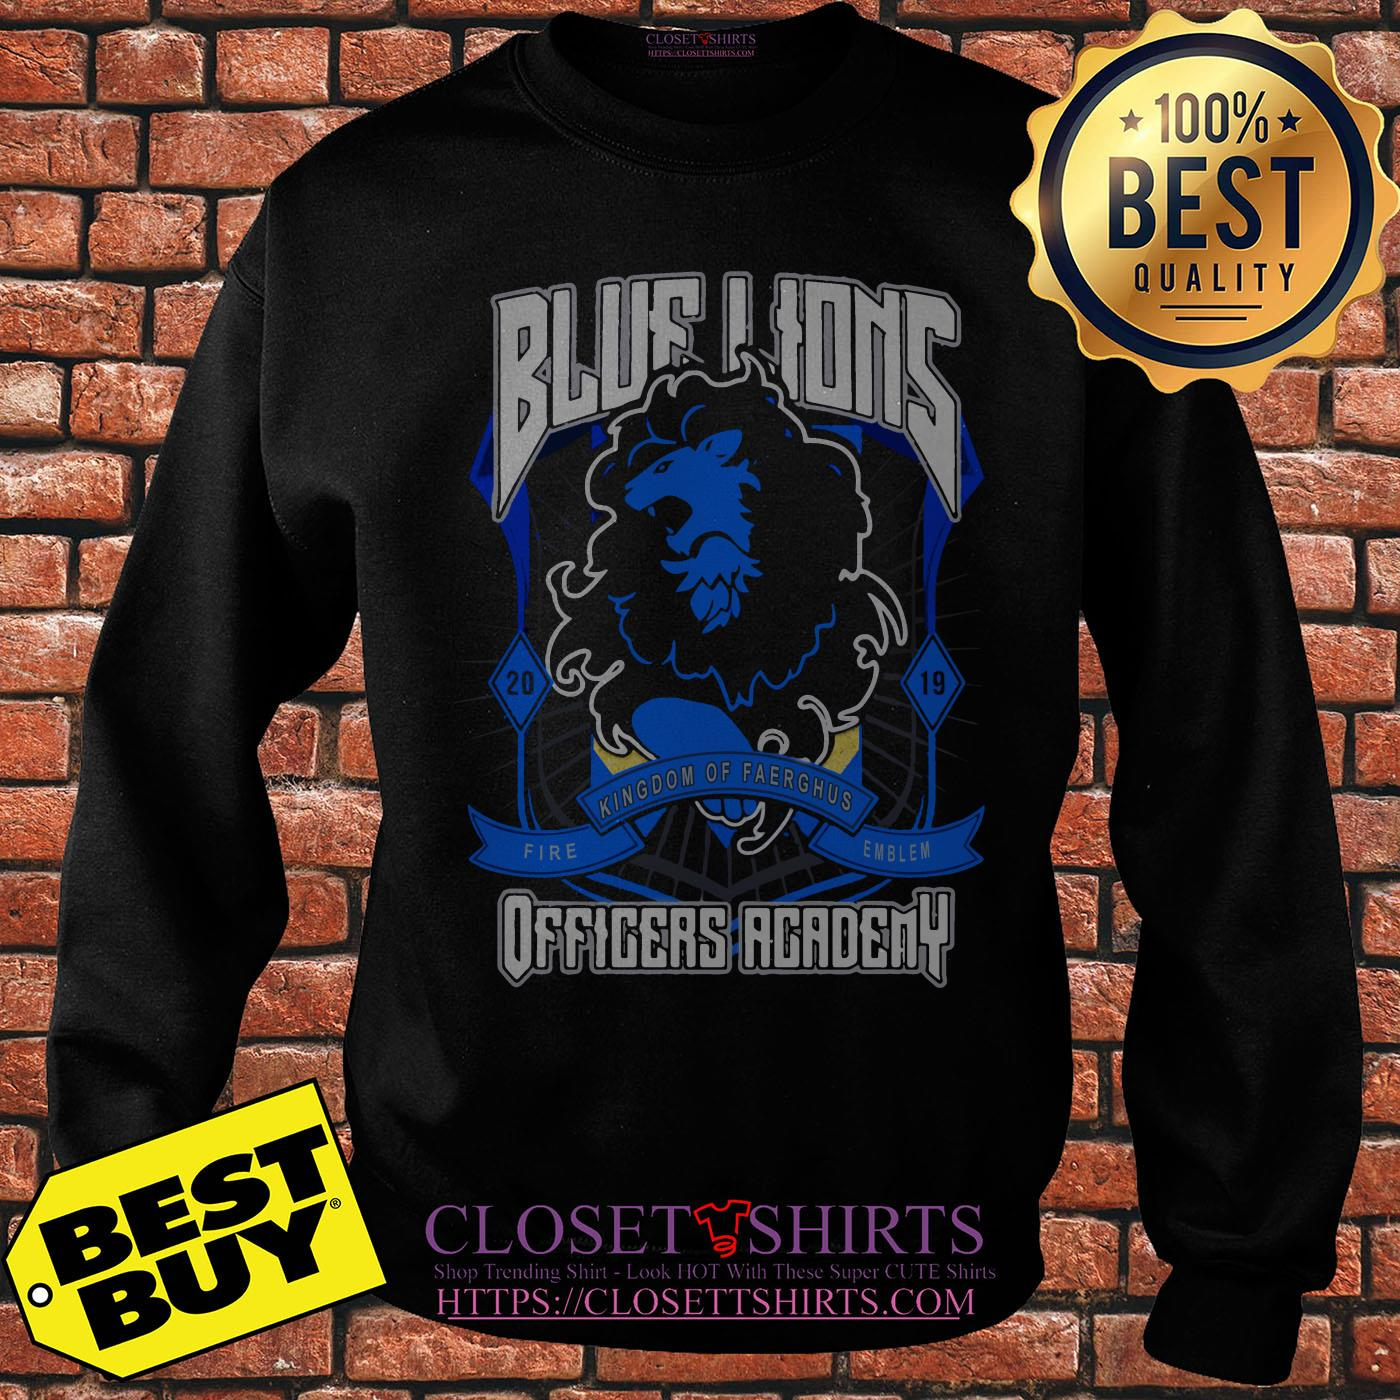 Blue Lions Offense Academy Football Playoffs sweatshirt